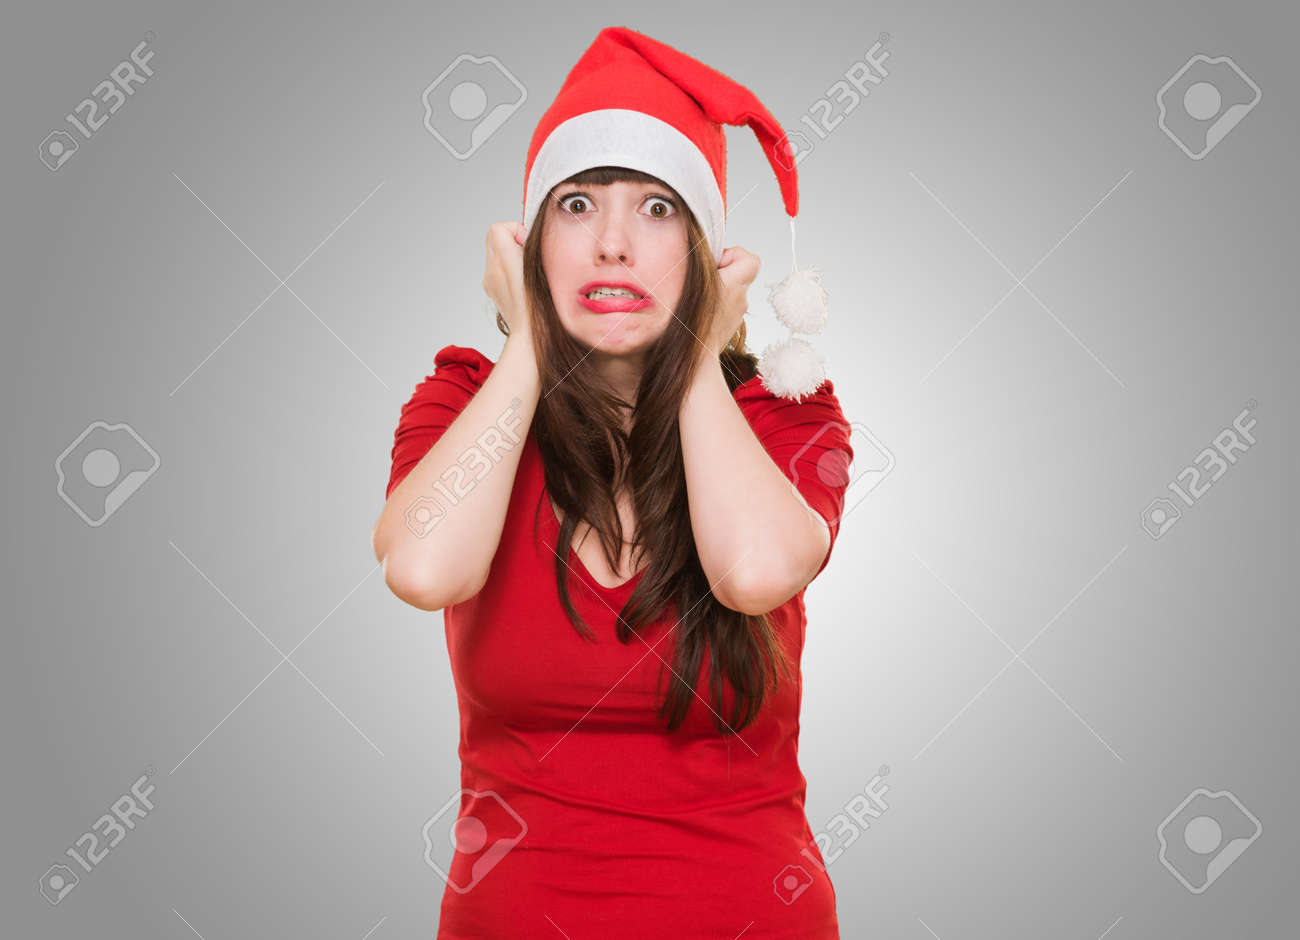 scared woman wearing a christmas hat against a grey background - 16290879